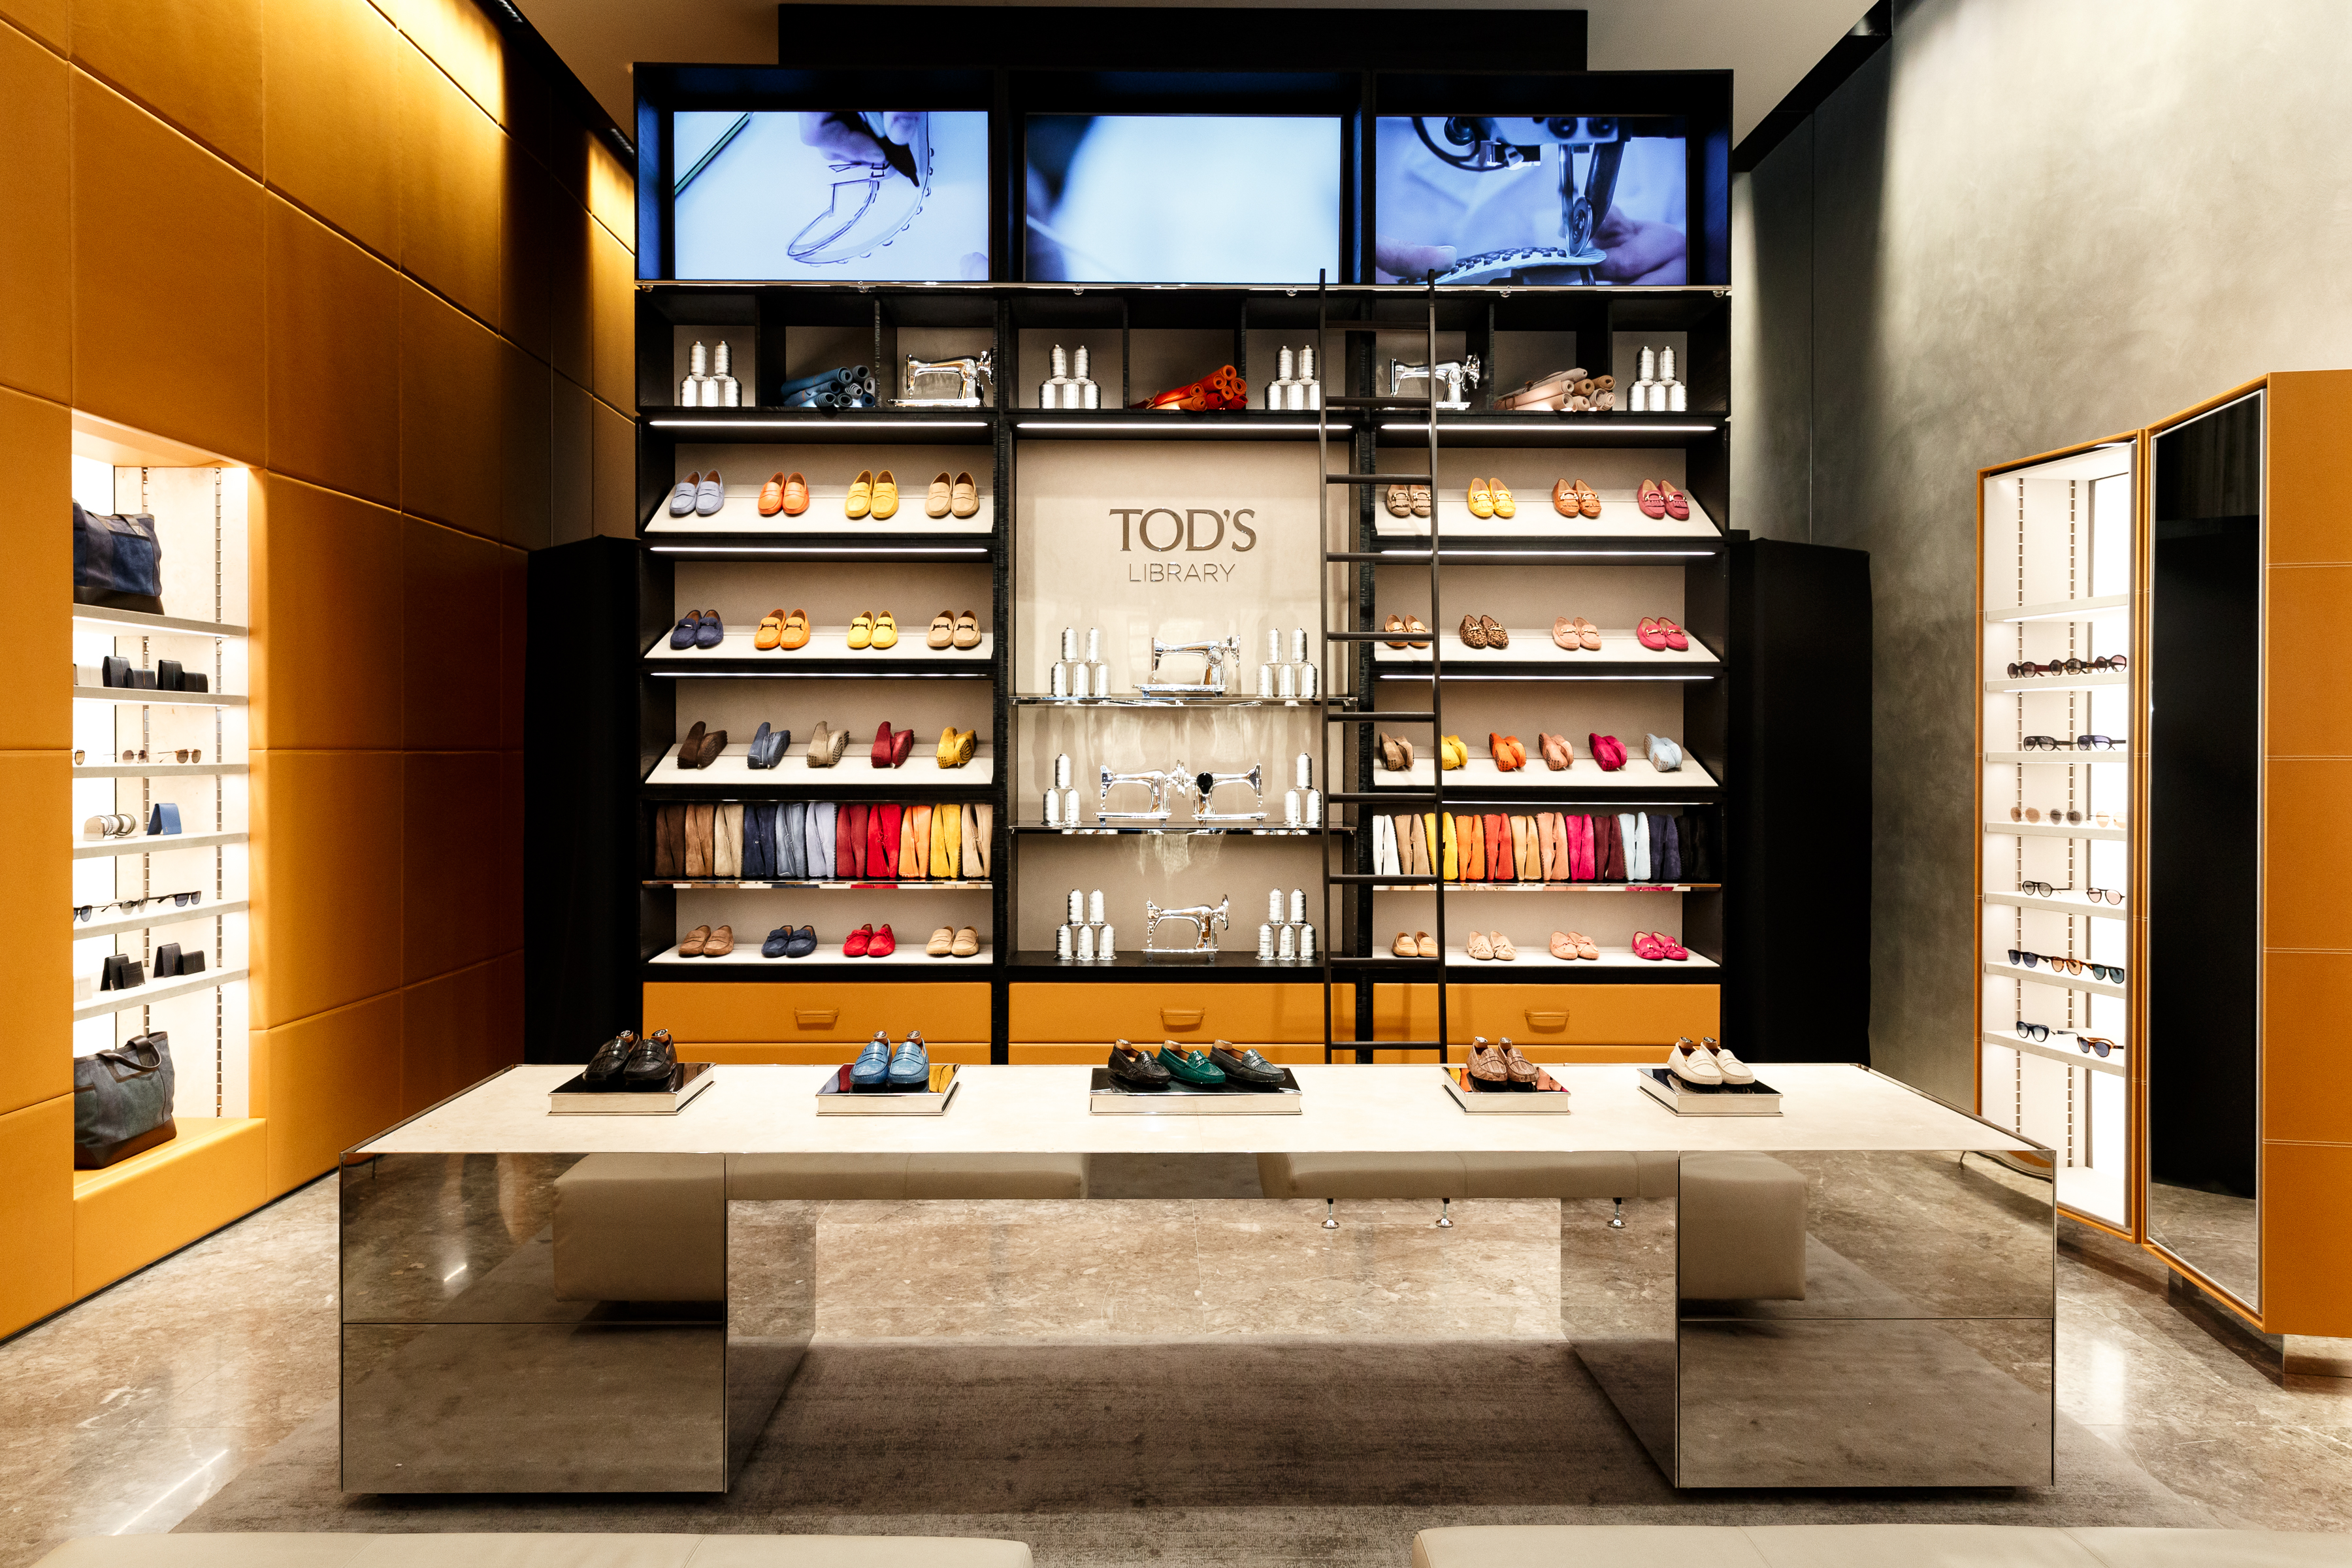 Tod's Library.